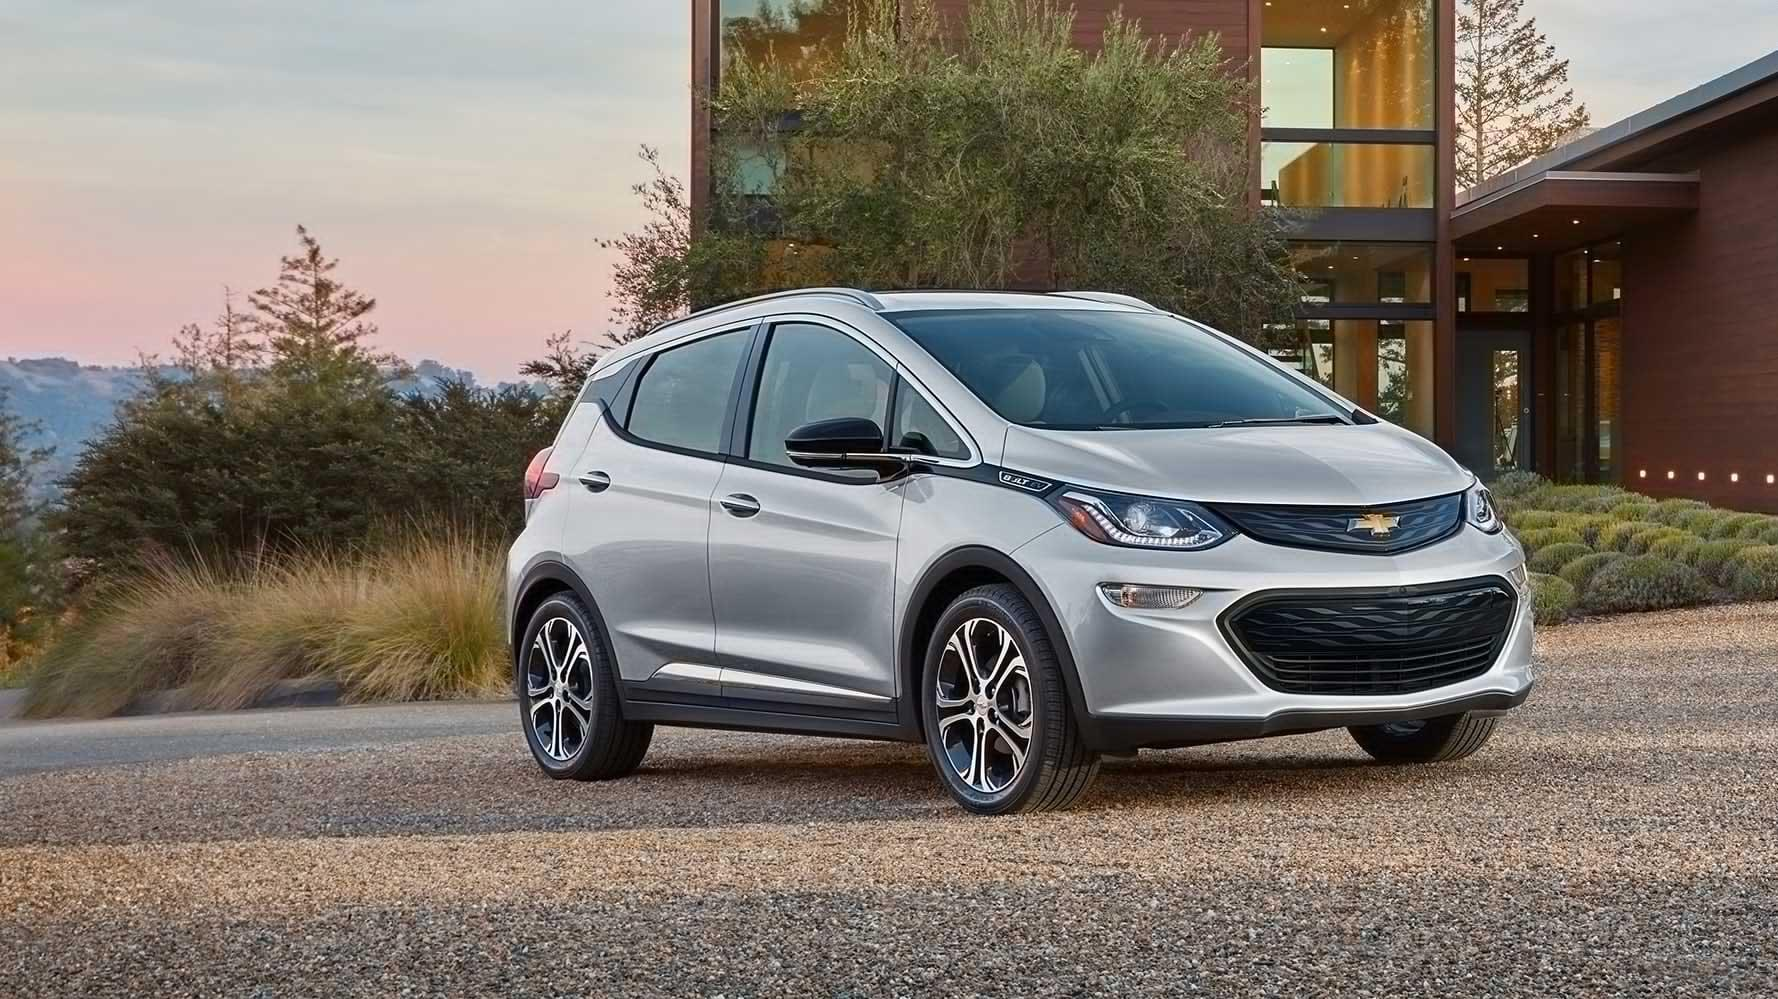 General Motors Plans New Infrastructure for Autonomous and Electric Vehicles